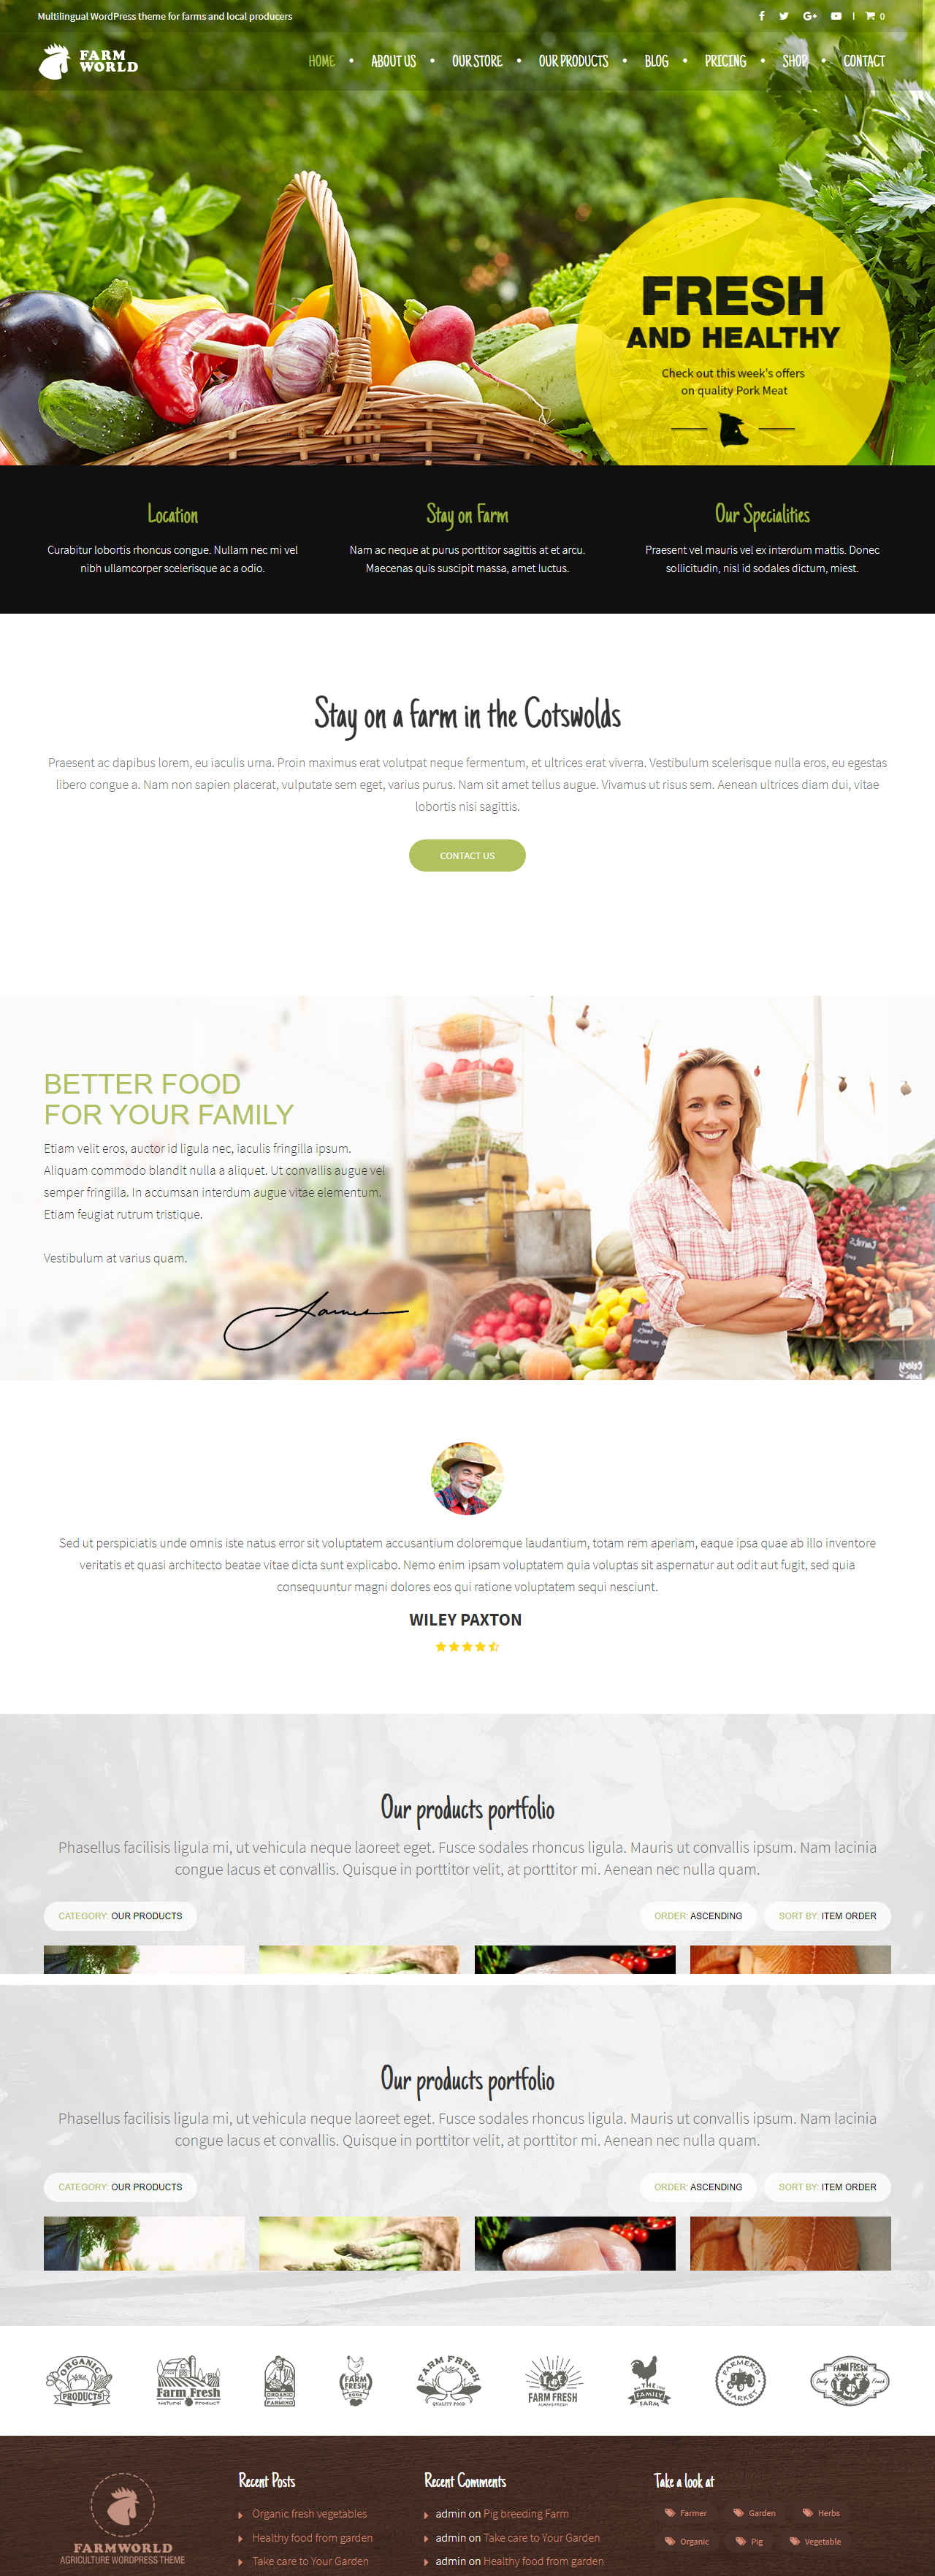 web design services in pune Web Design Services in Pune FARMWORLD WORDPRESS THEME